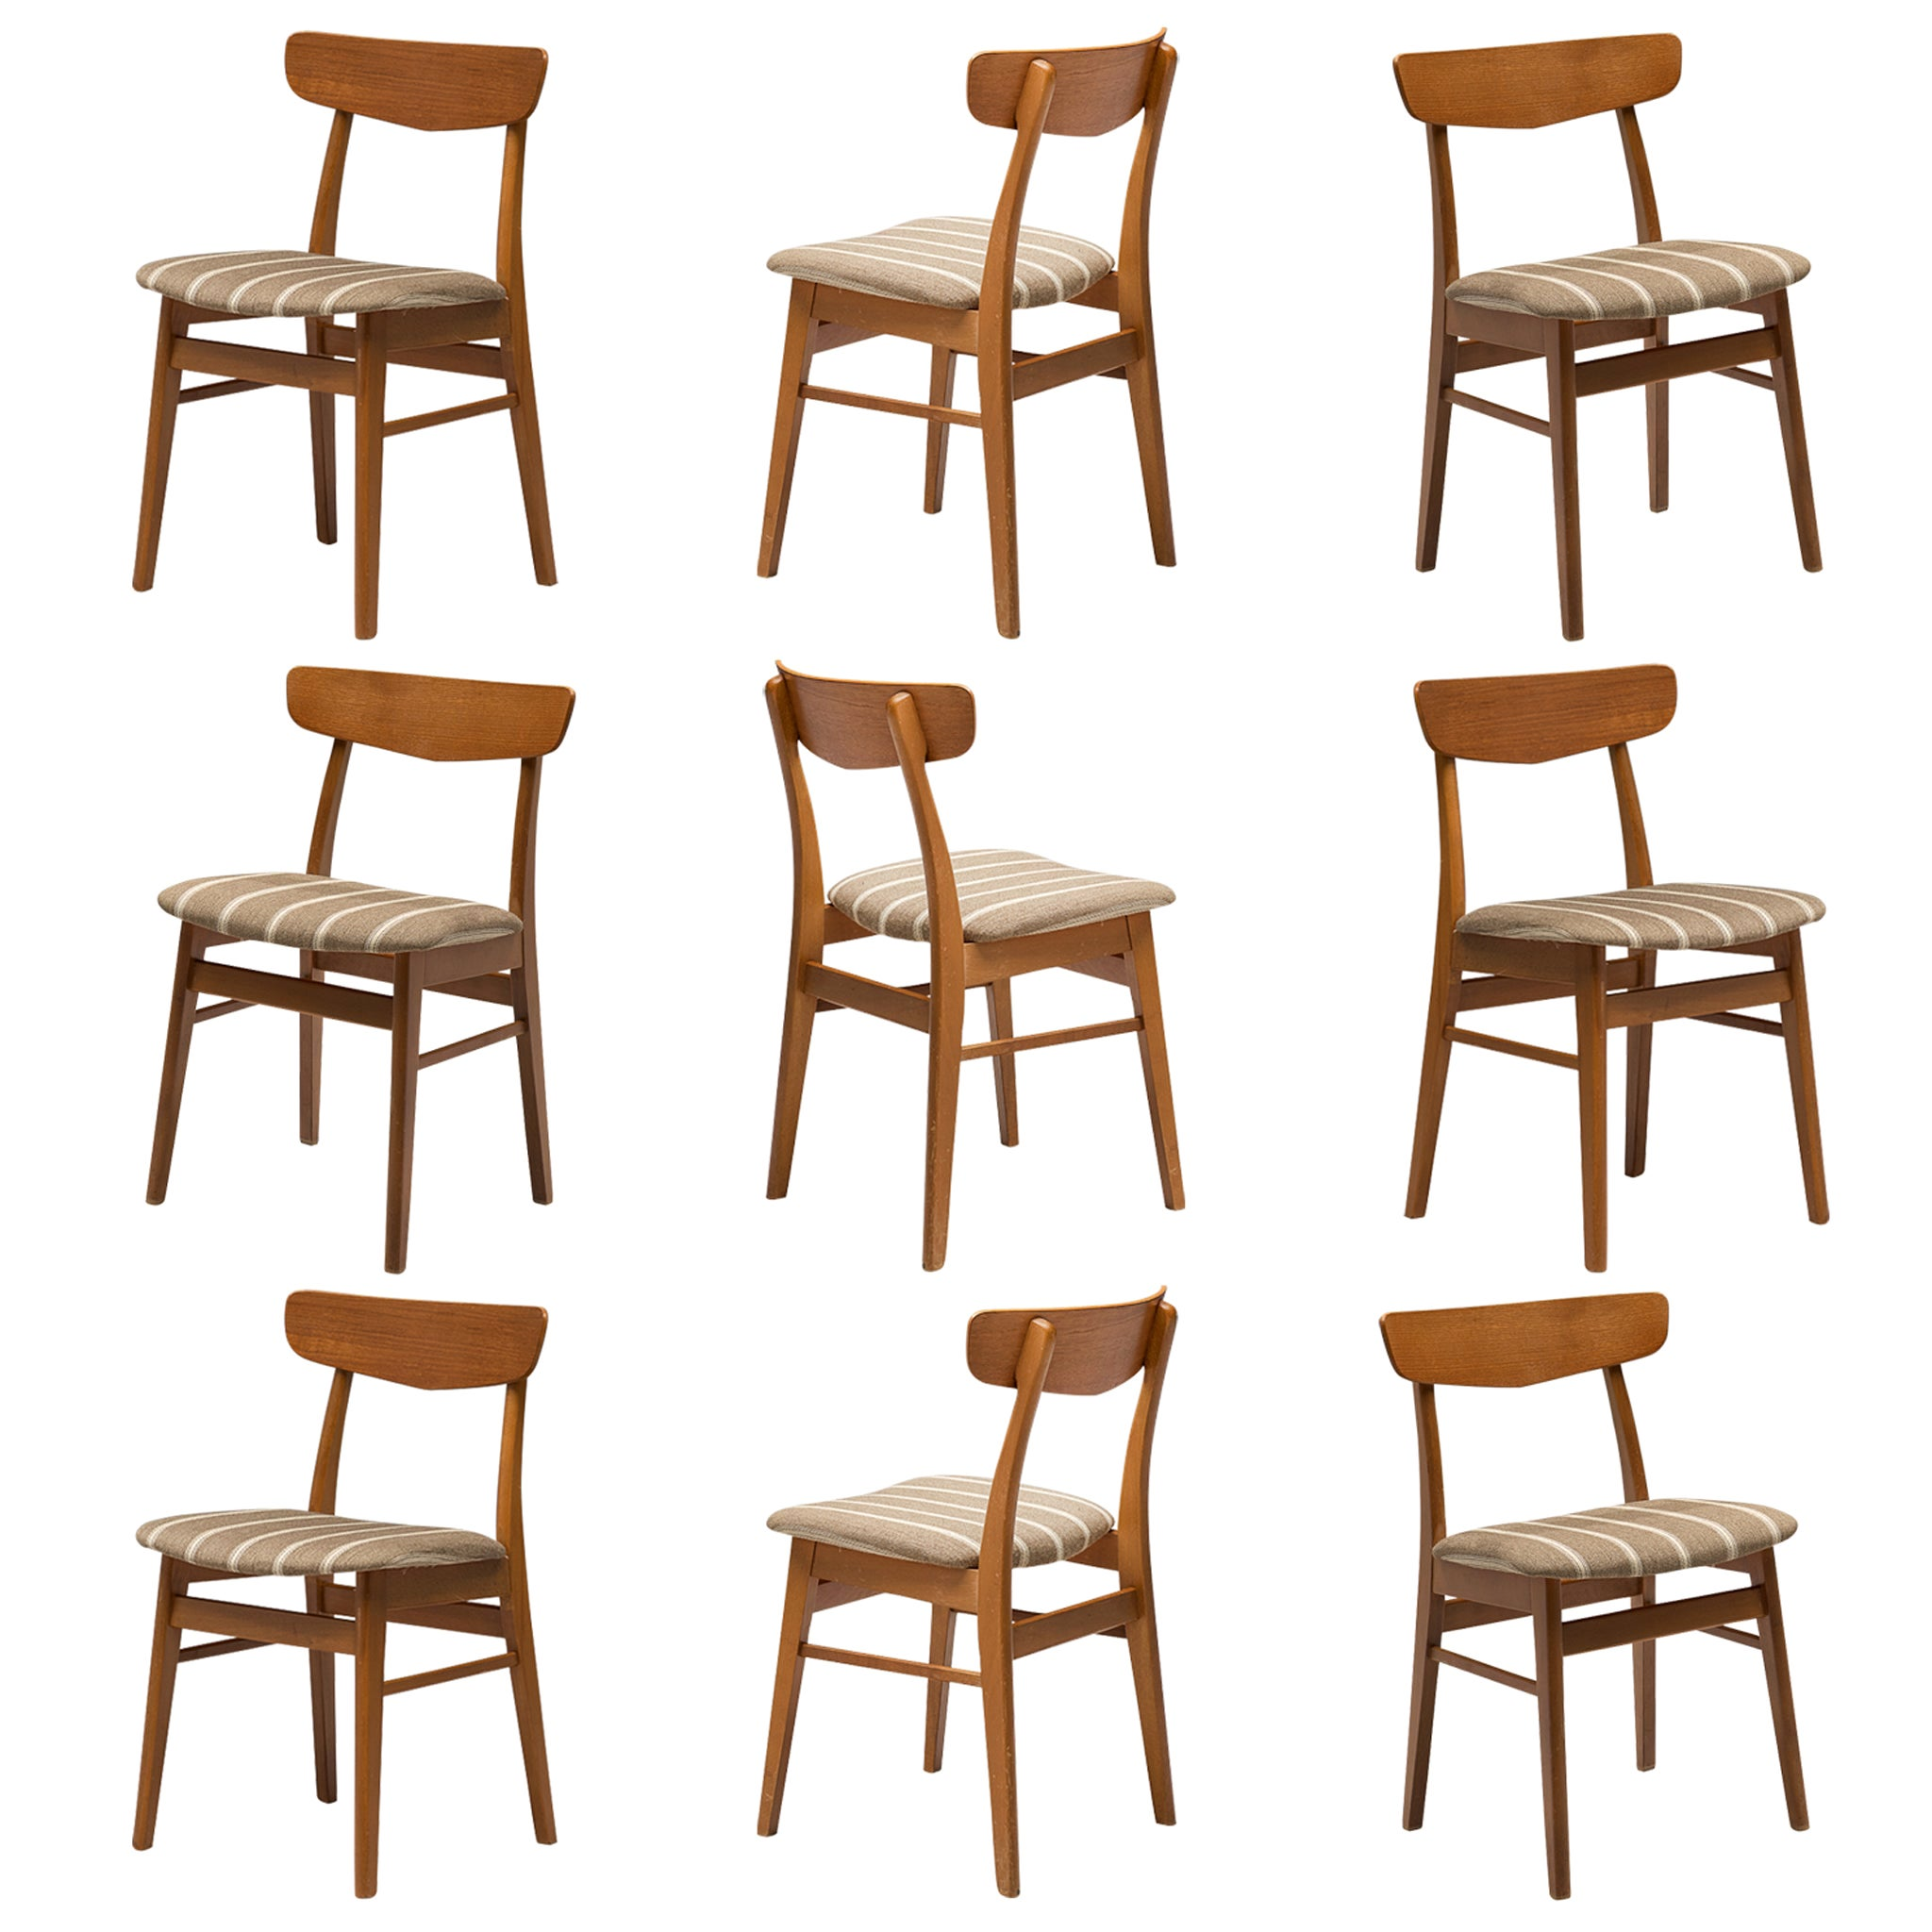 Large Set of Danish Dining Chairs in Teak